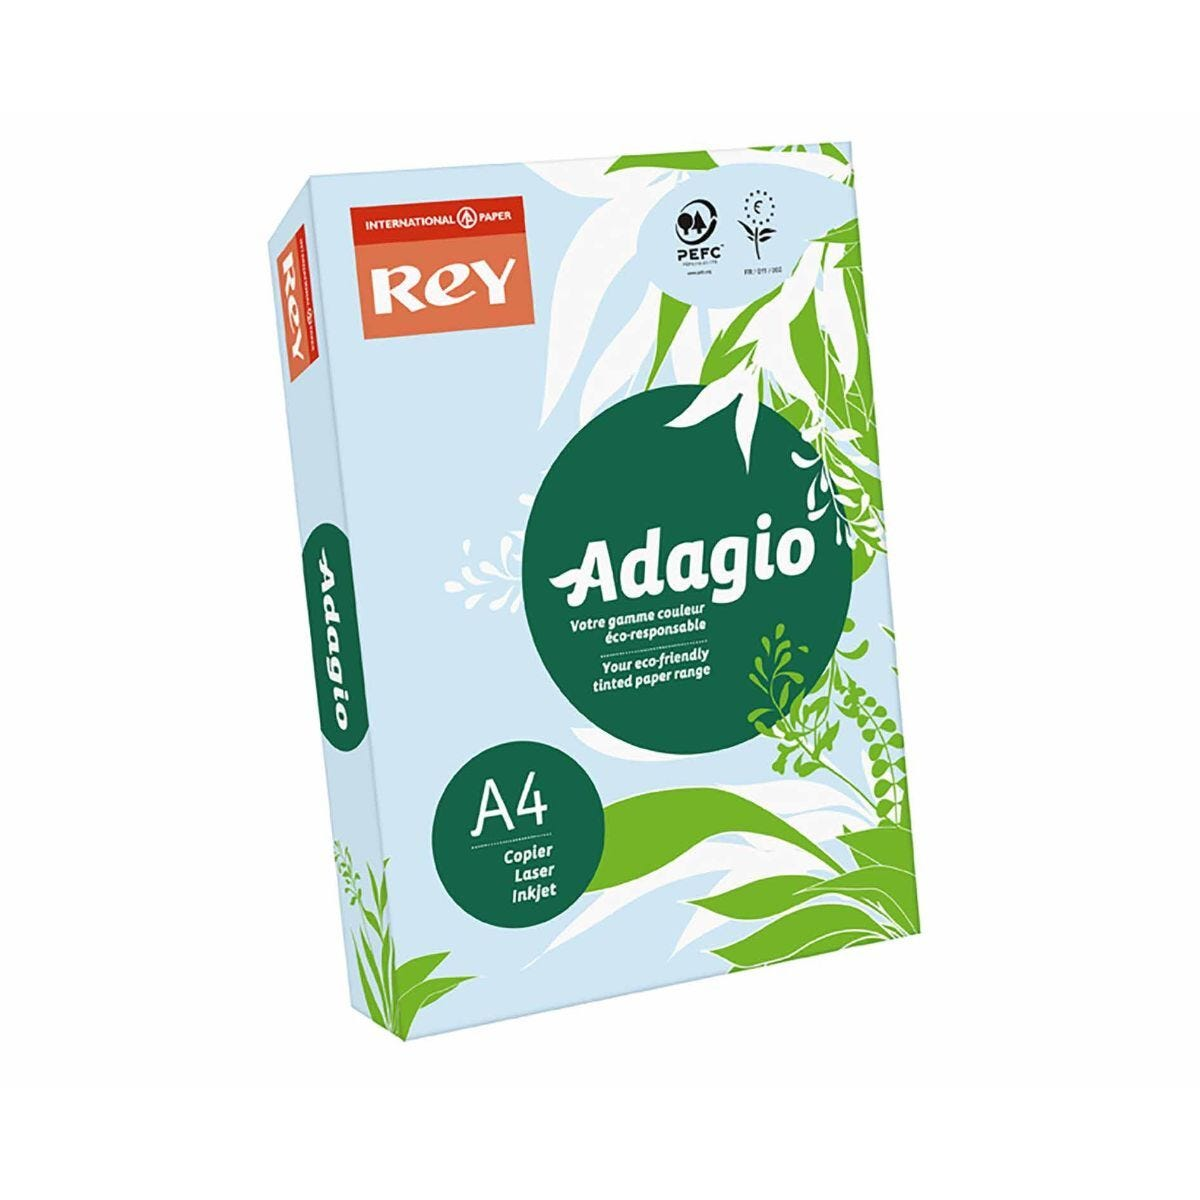 Rey Adagio Ream of Paper Pastel Coloured A4 80gsm 500 Sheets Blue